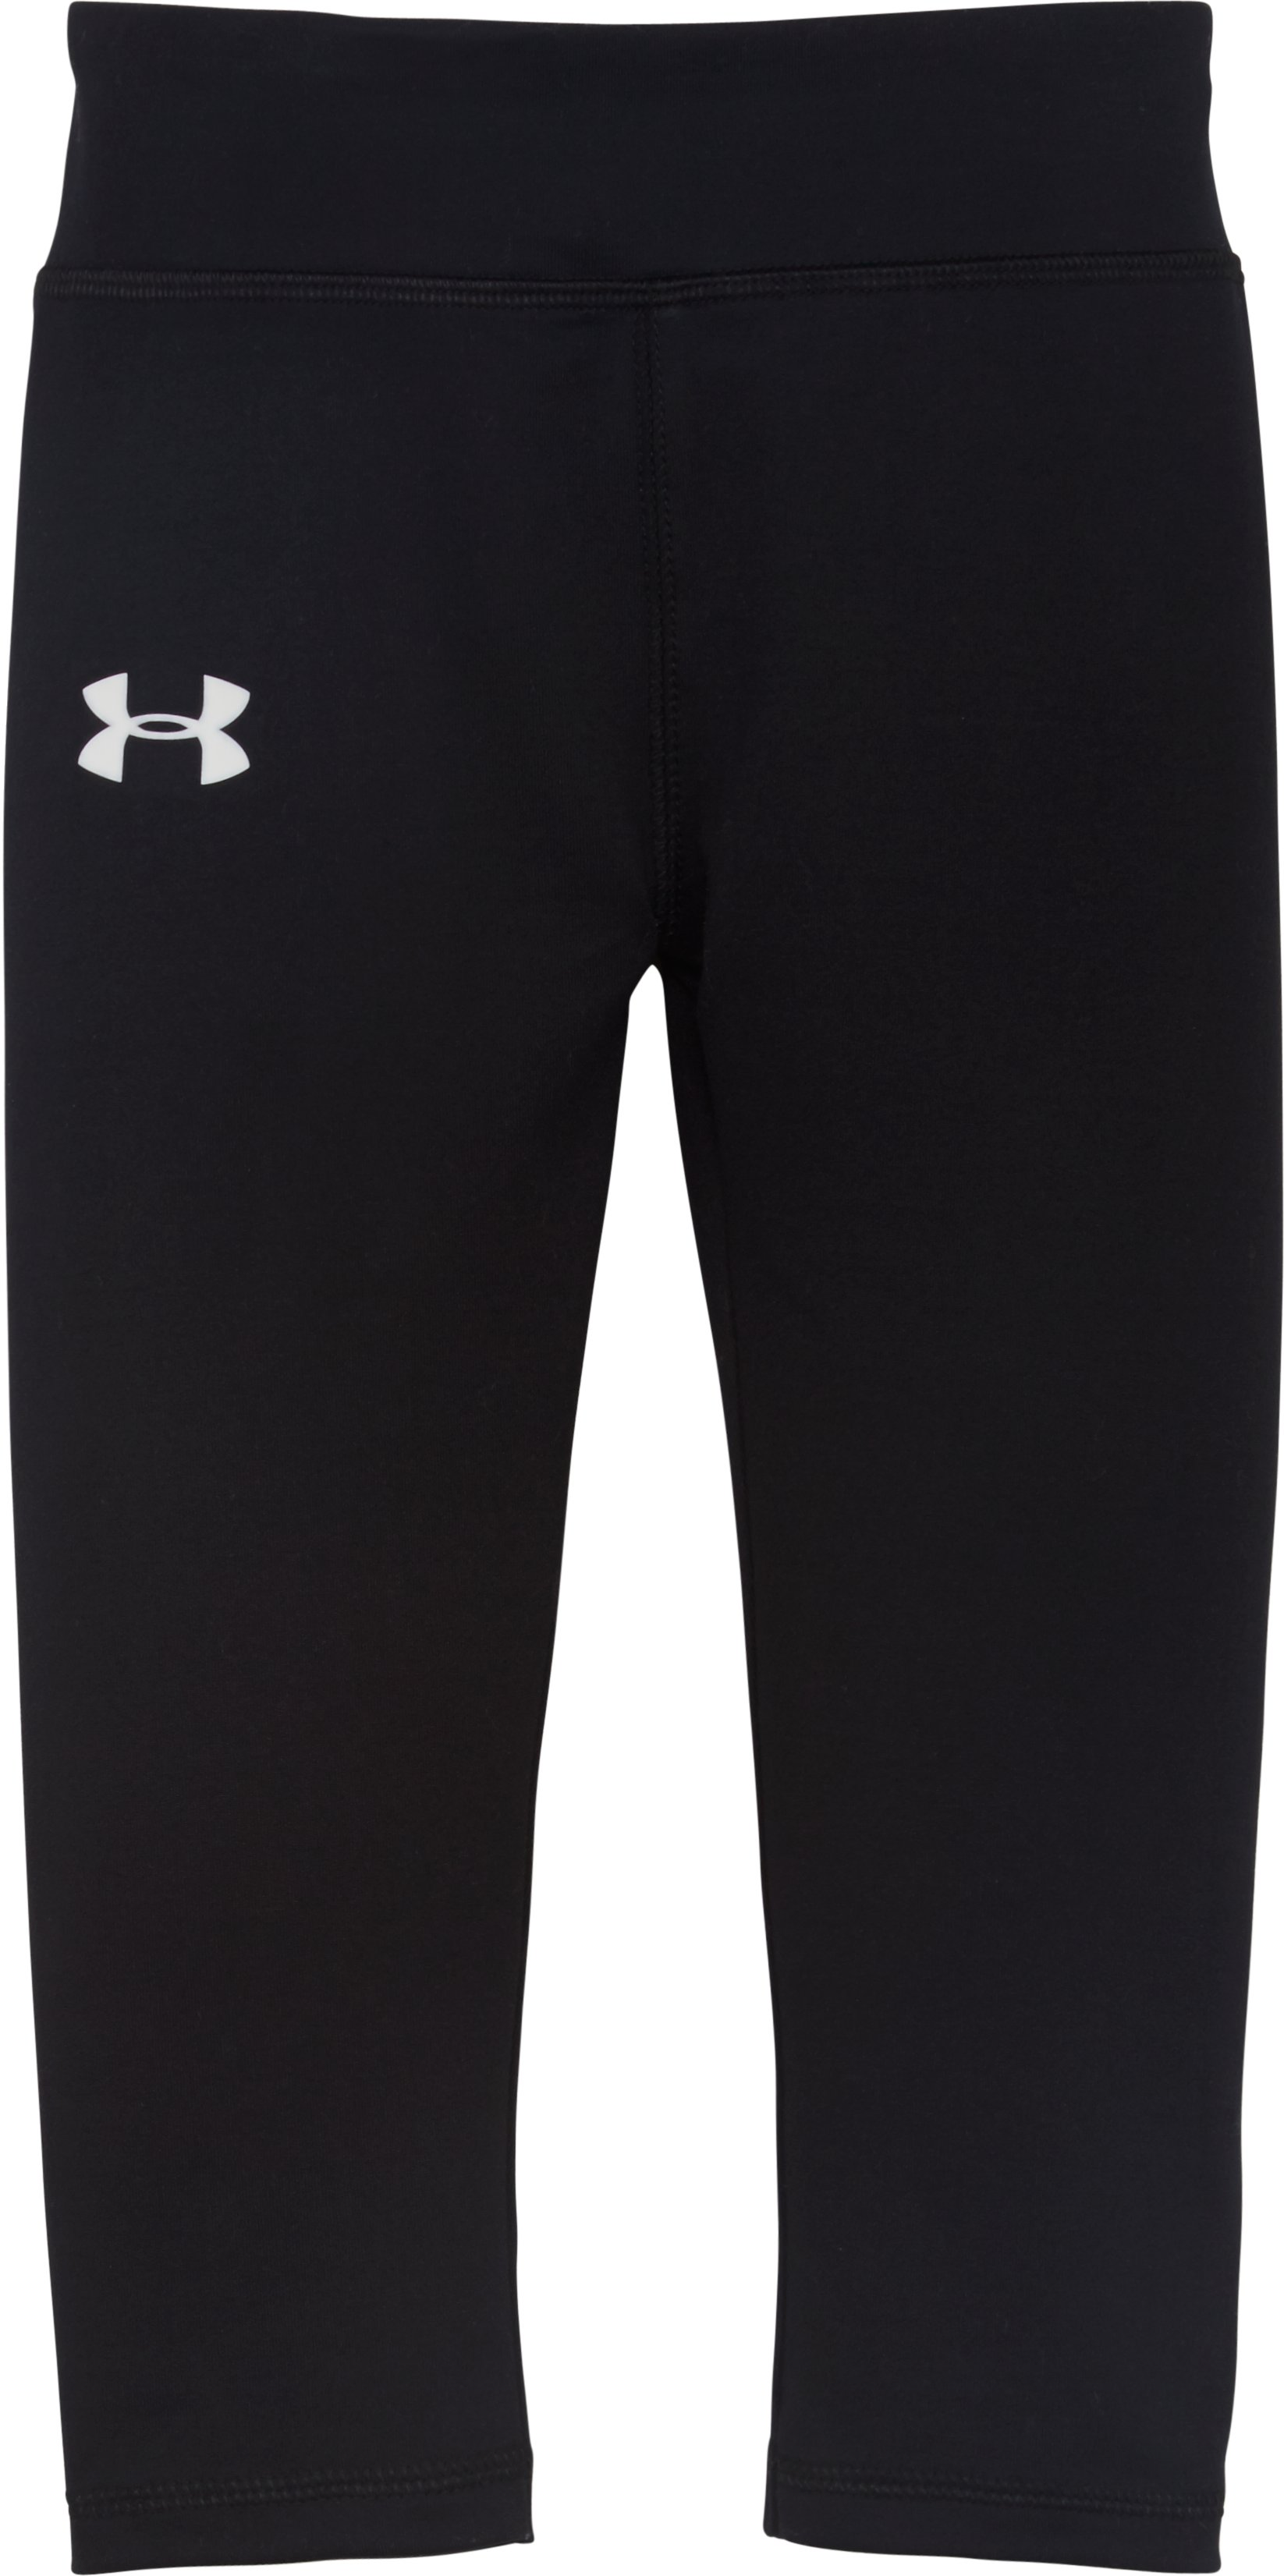 Girls' Pre-School UA Every Day Capris, Black